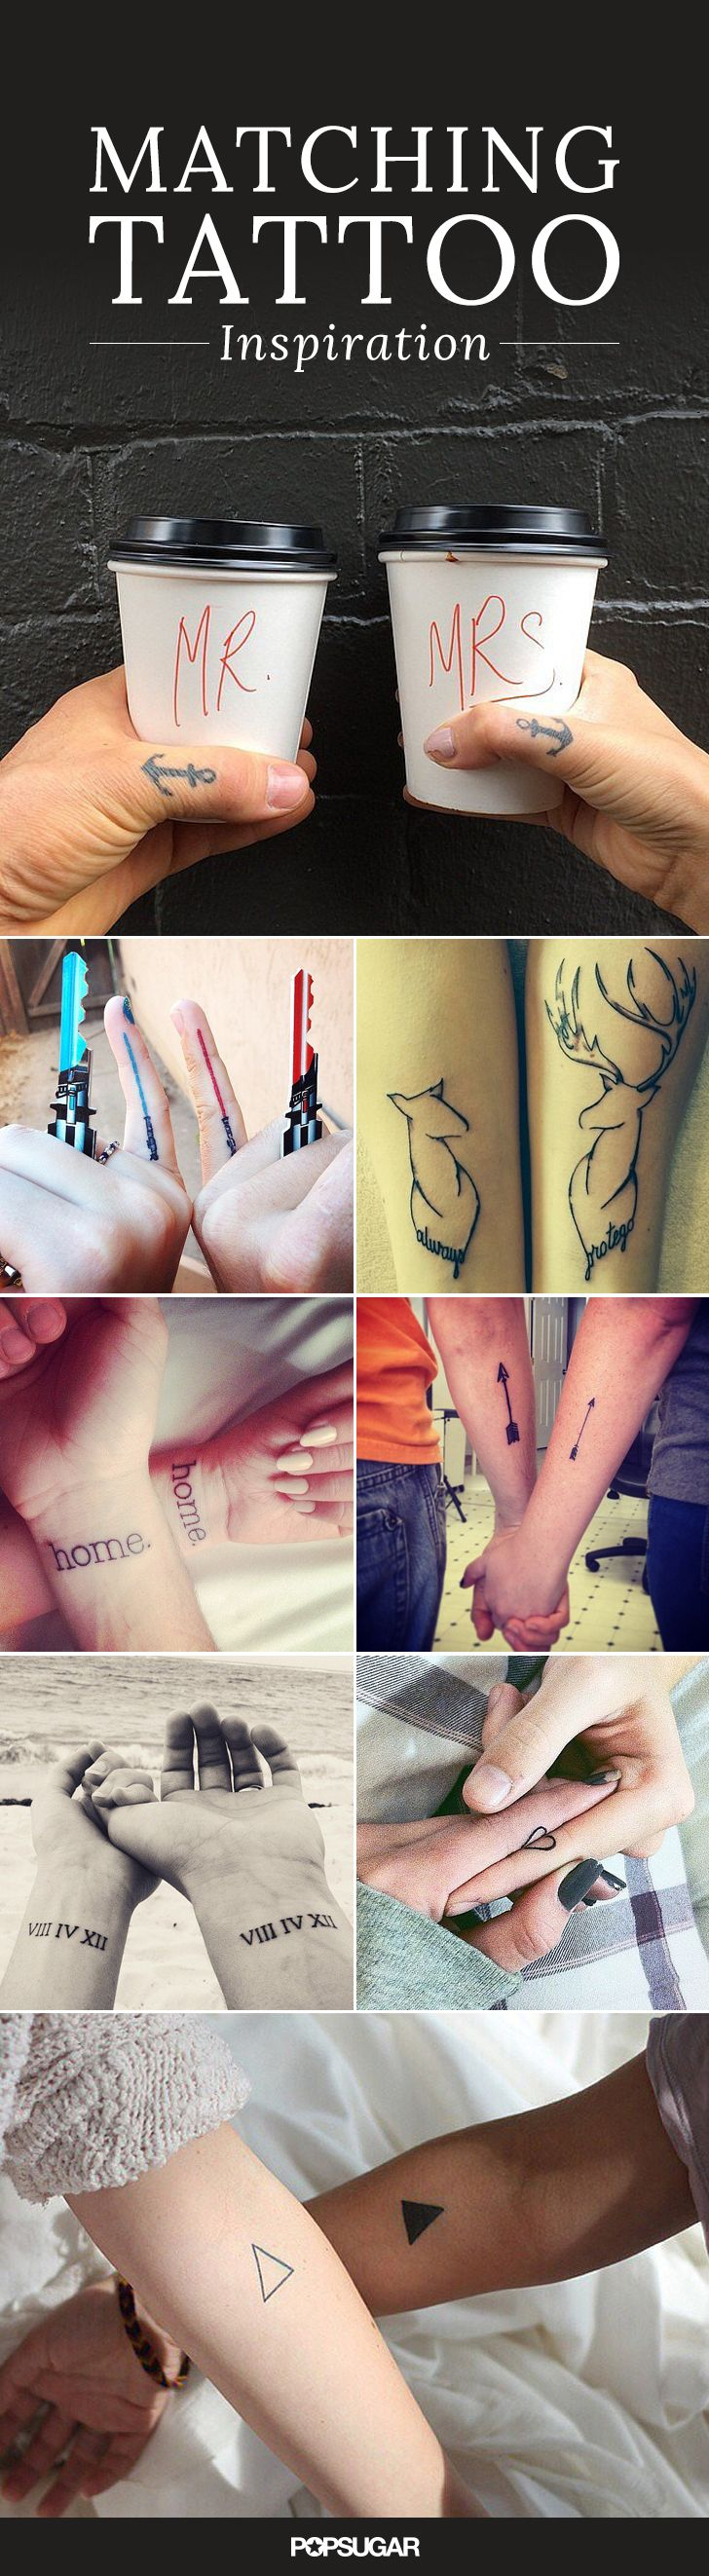 Cute Tattoo Design Ideas For Couples Matching with Meanings (5)